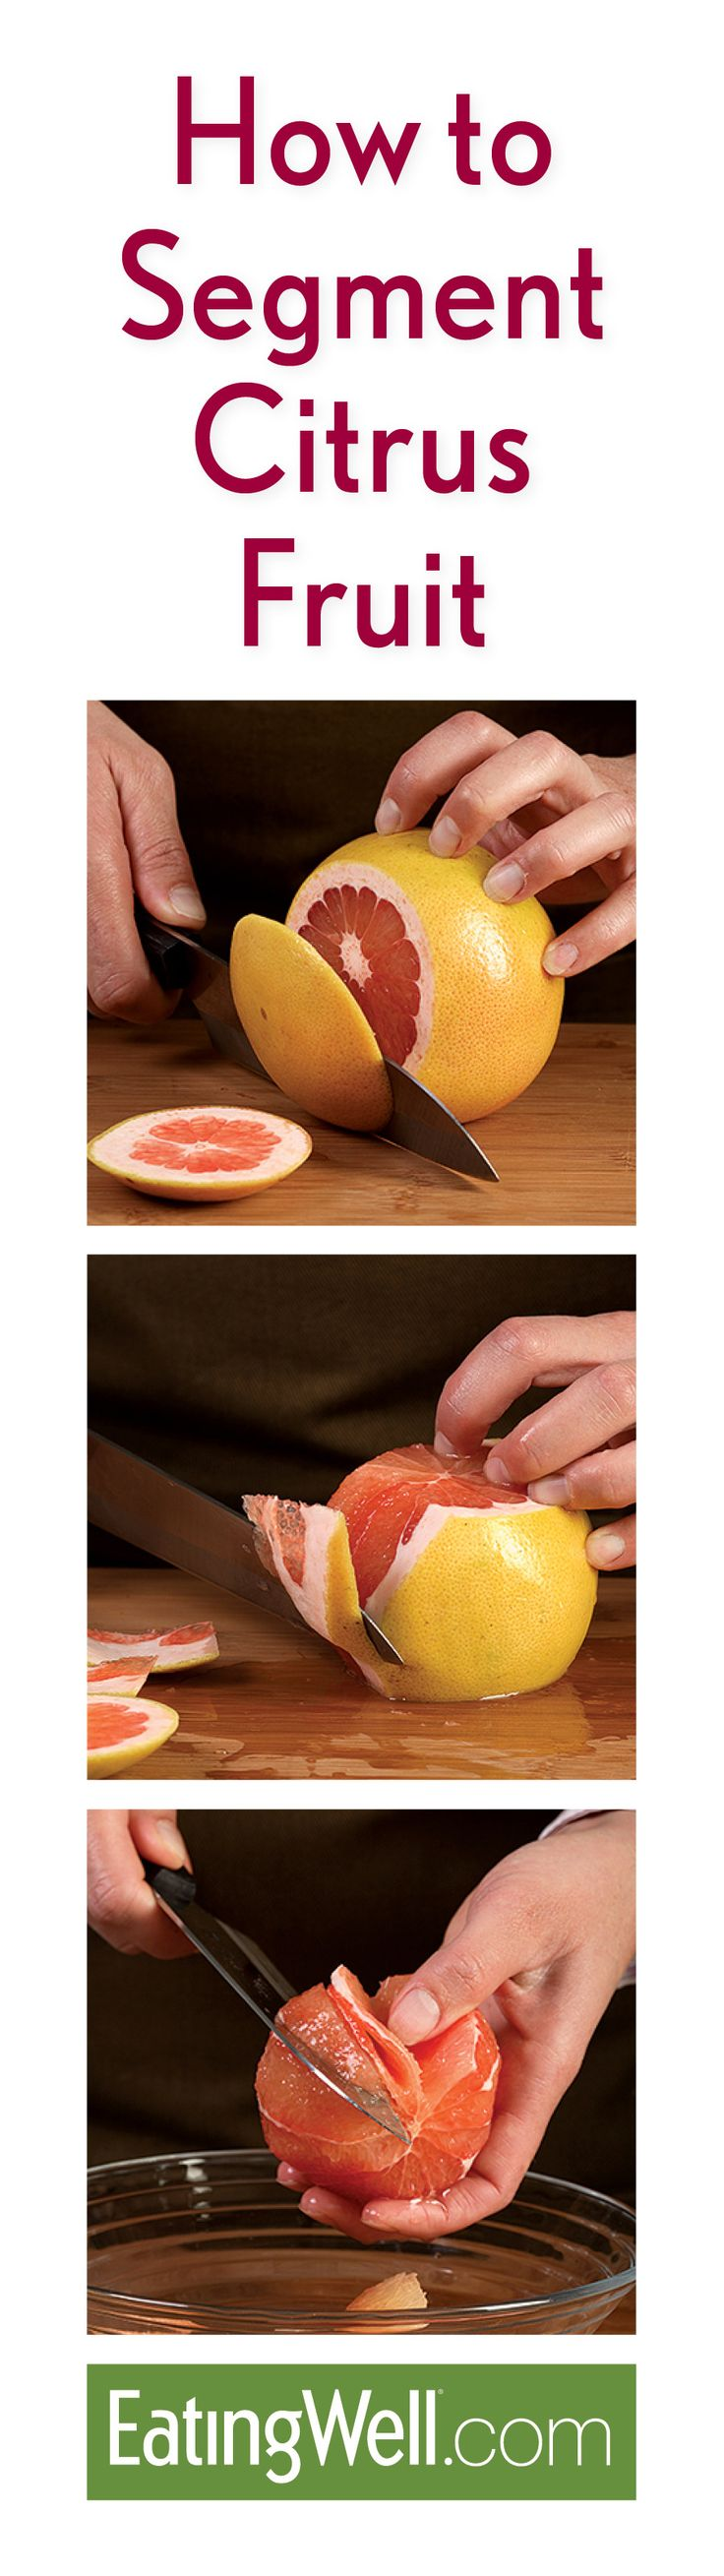 Winter is citrus fruit season, get your fill of fruits like grapefruit with this easy tutorial on how to segment citrus fruit.